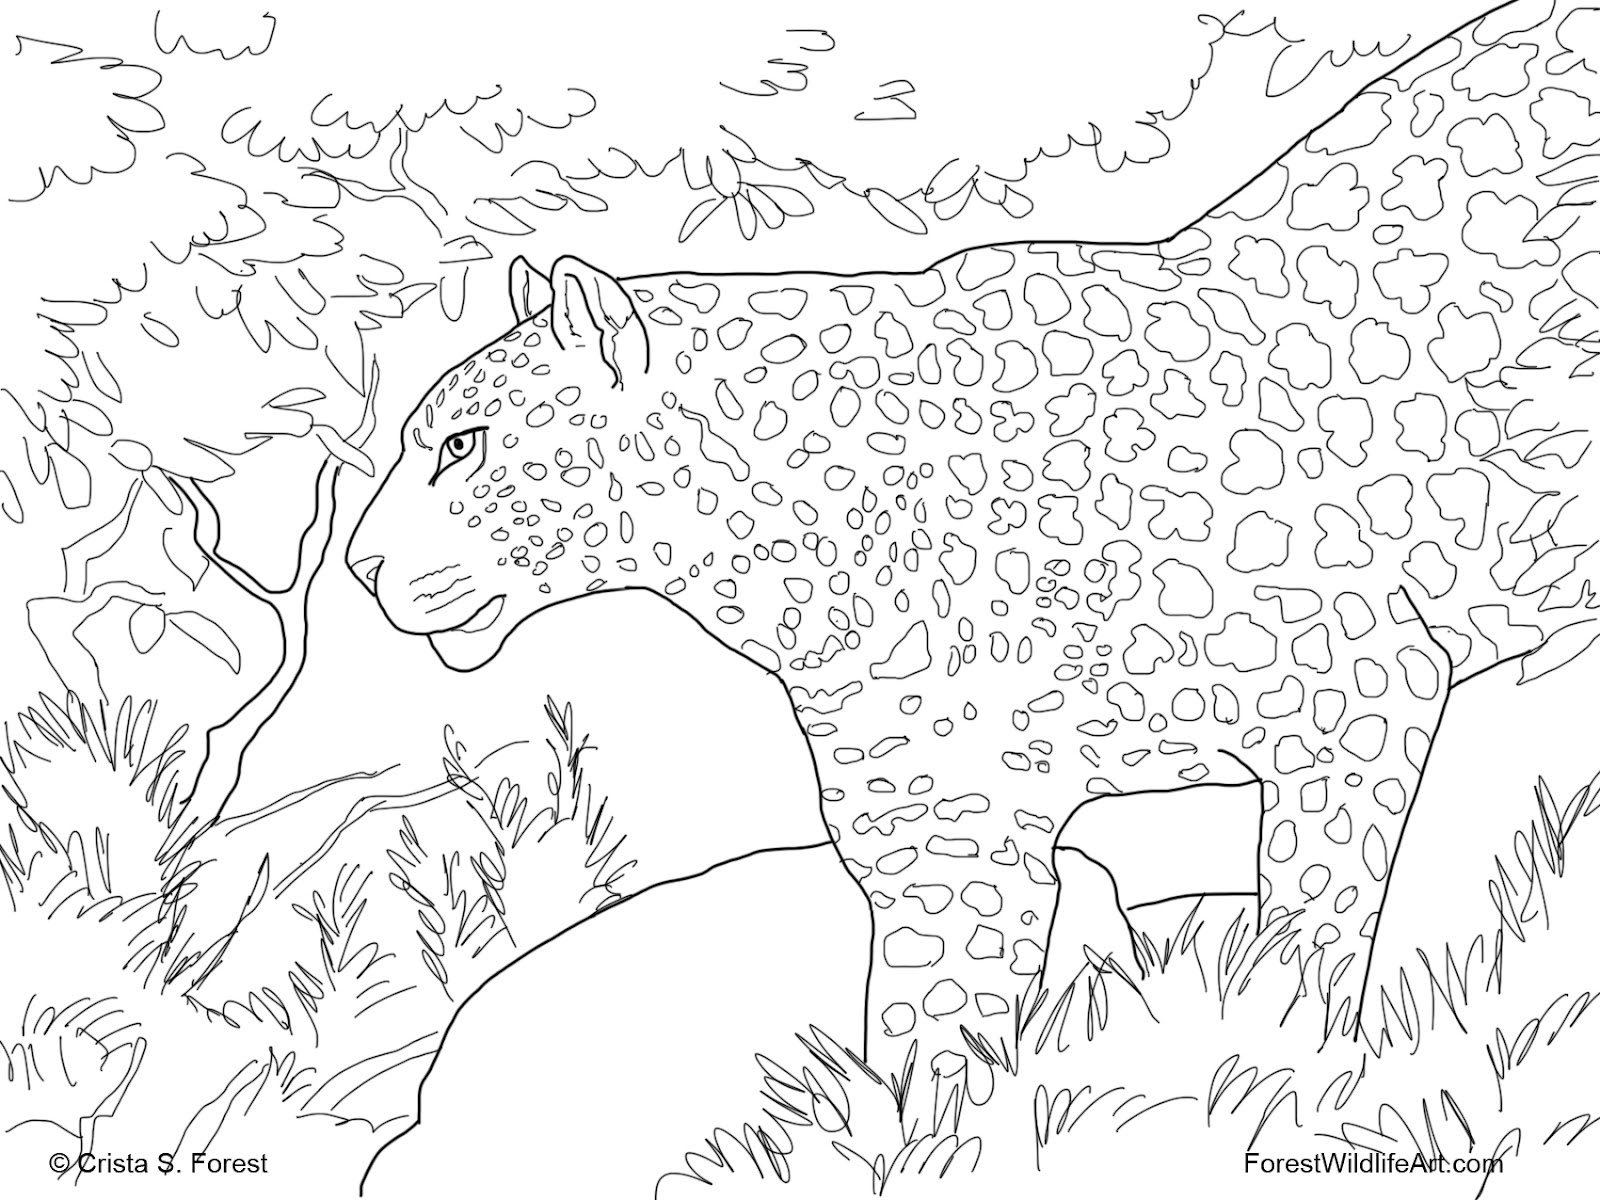 As With The Previous Coloring Pages Have Your Kids Download It Print Out And Color Or Paint Any Way They Want Realistic Wild Crazy